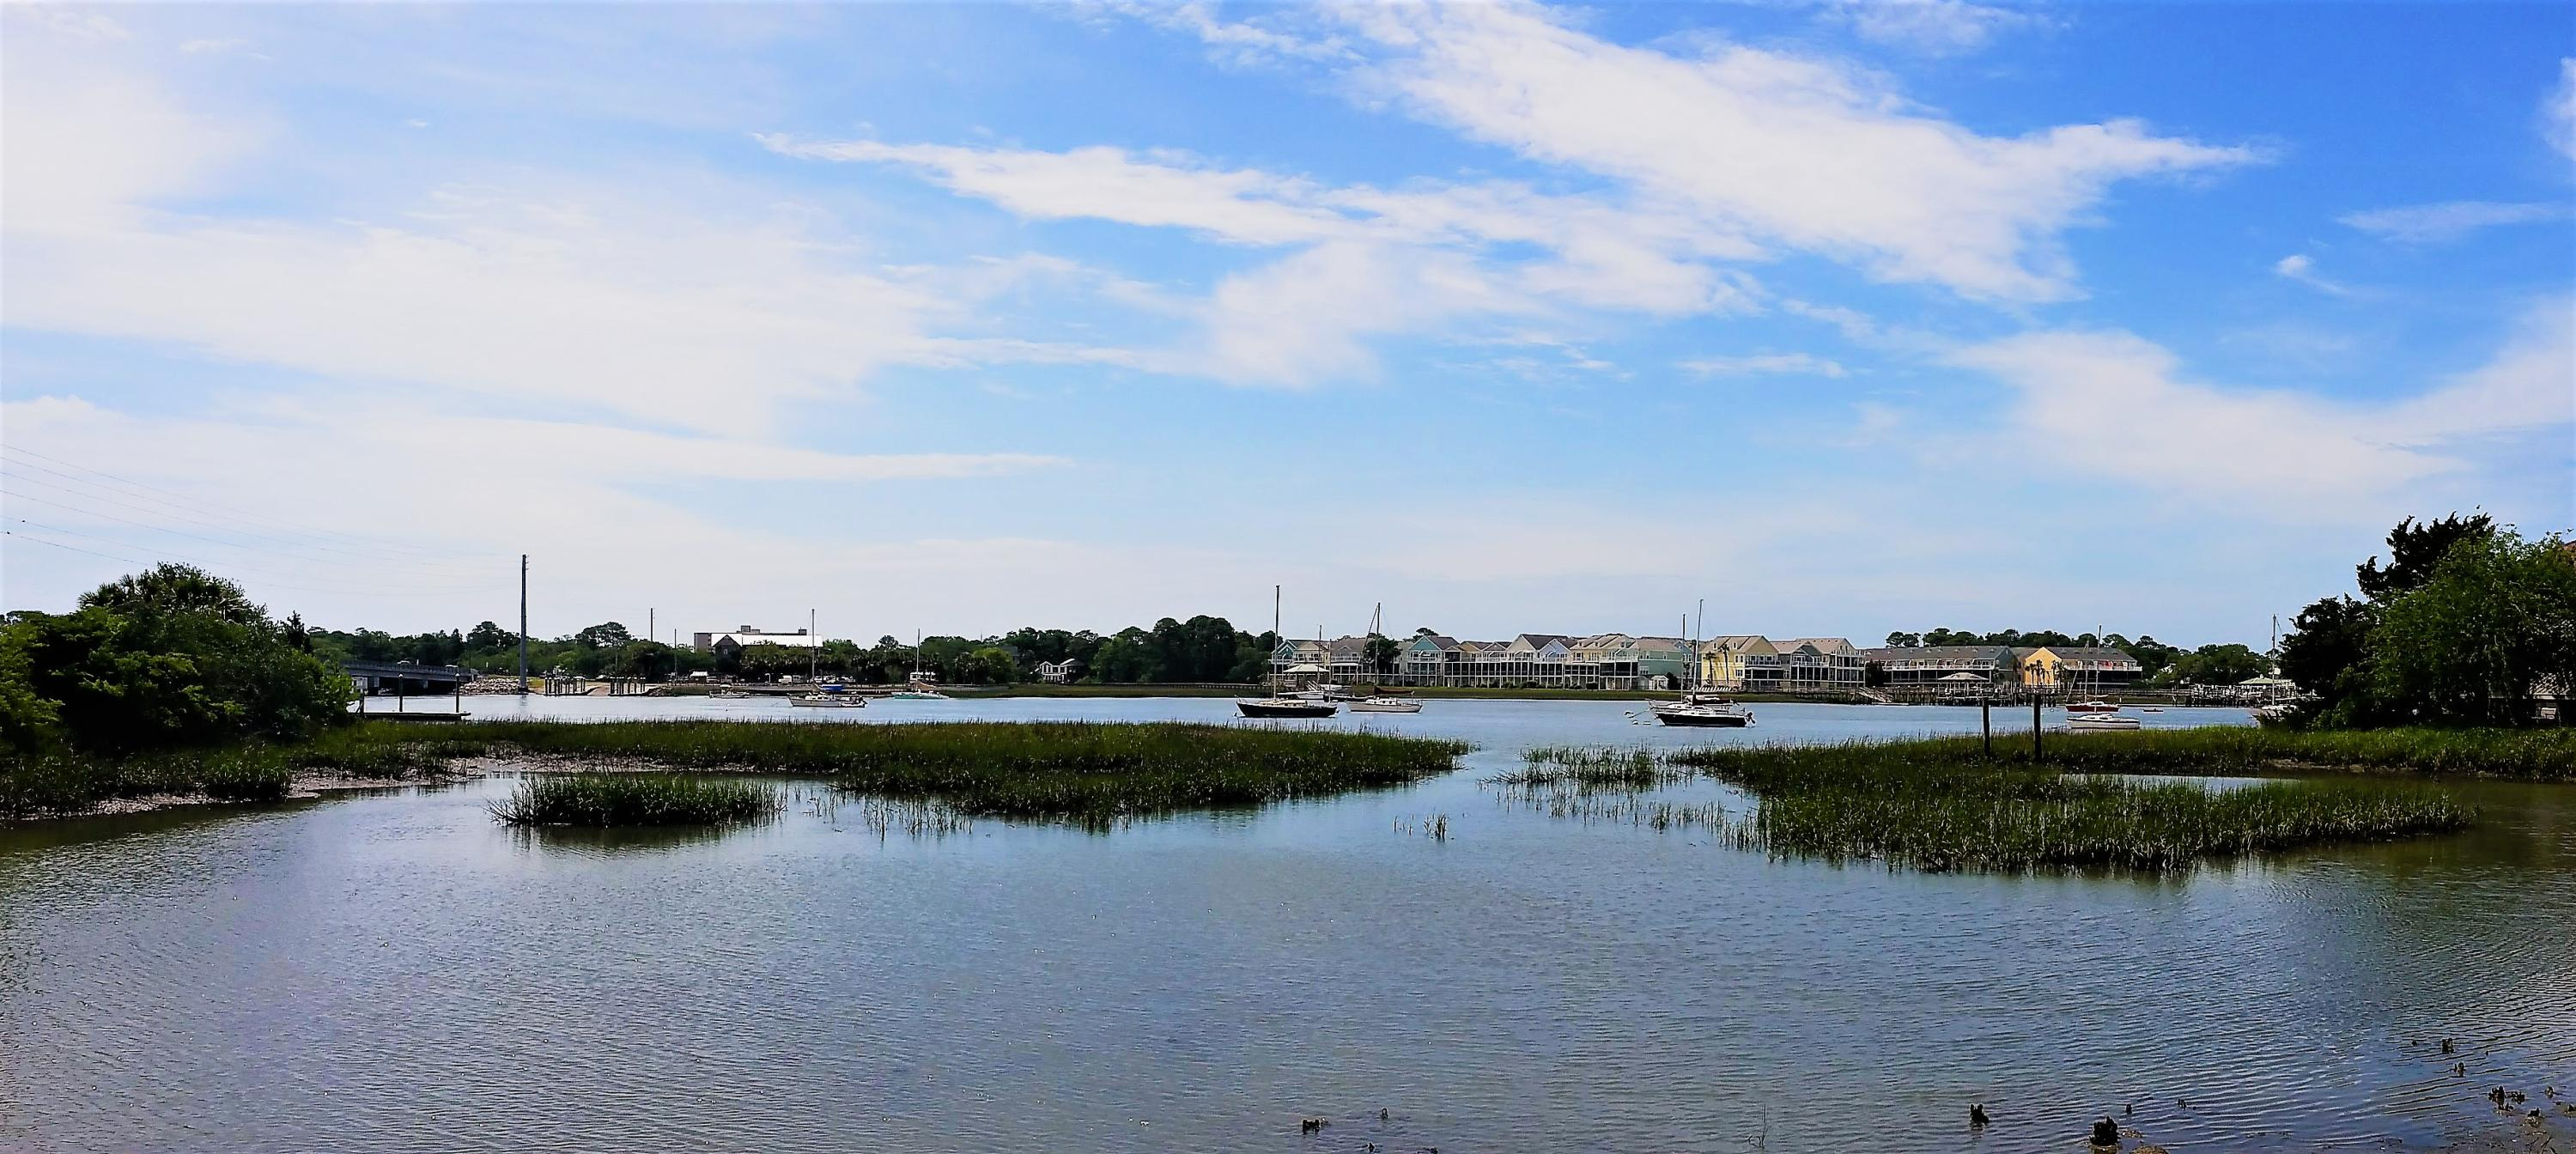 Mariners Cay Homes For Sale - 16 Mariners Cay, Folly Beach, SC - 7